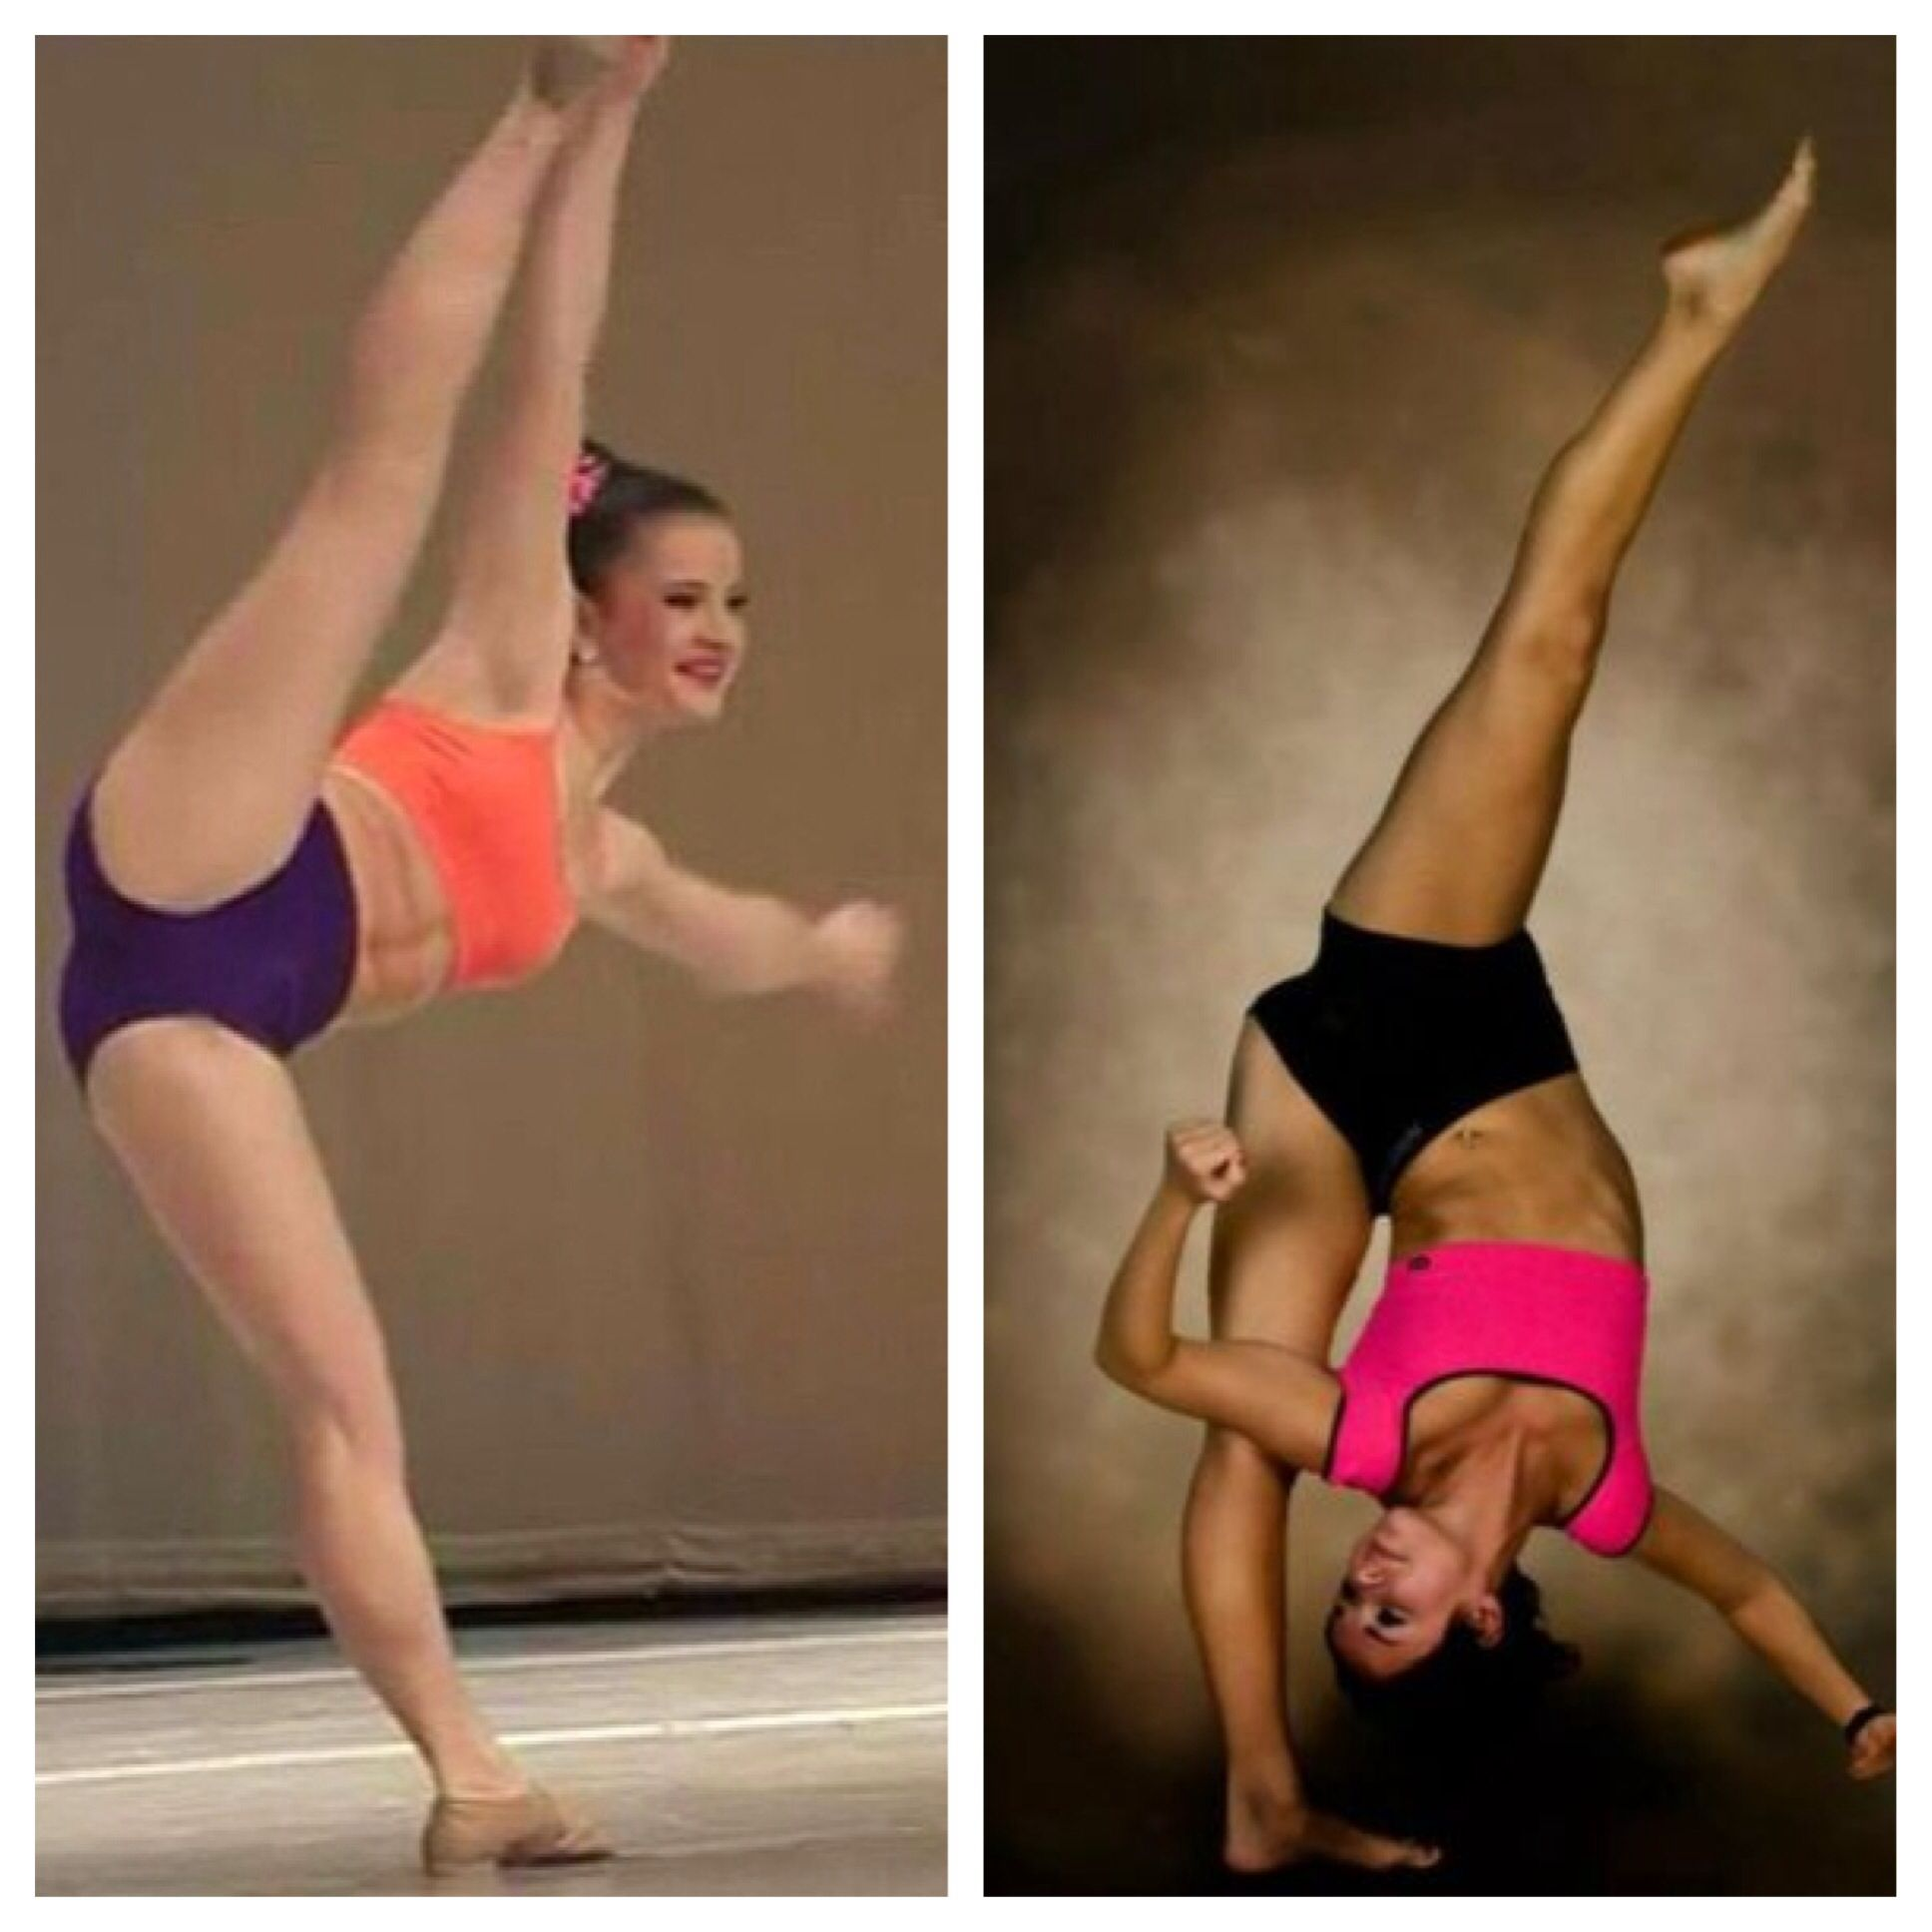 Brooke's tilt! #tilttuesday | brooke hyland | Pinterest ...